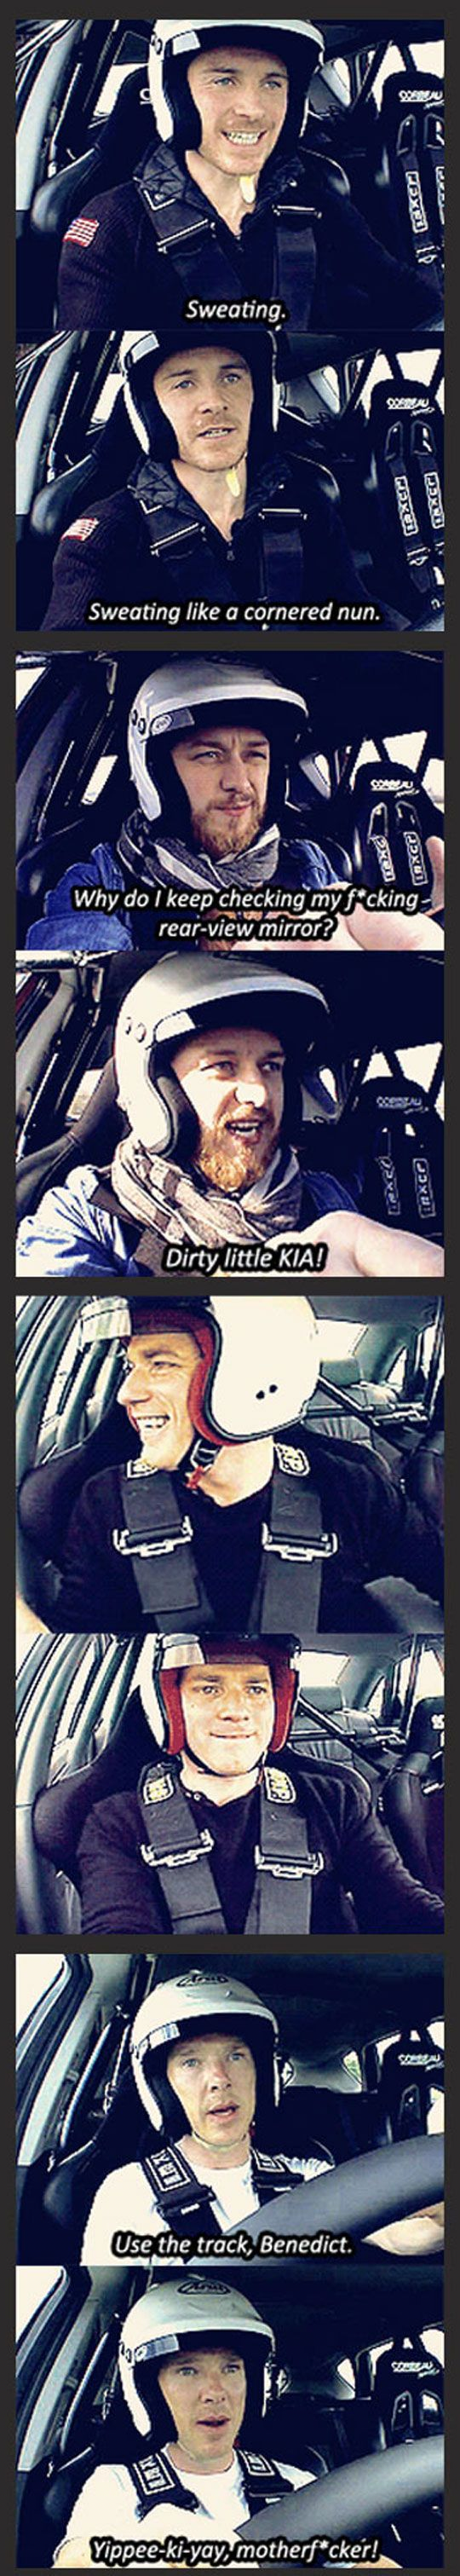 "Funny snapshots from the lap on ""Top Gear"" - Sorry about the language, but I guess that's what happens when you tell guys to drive as fast as they can in competition with each other :P"